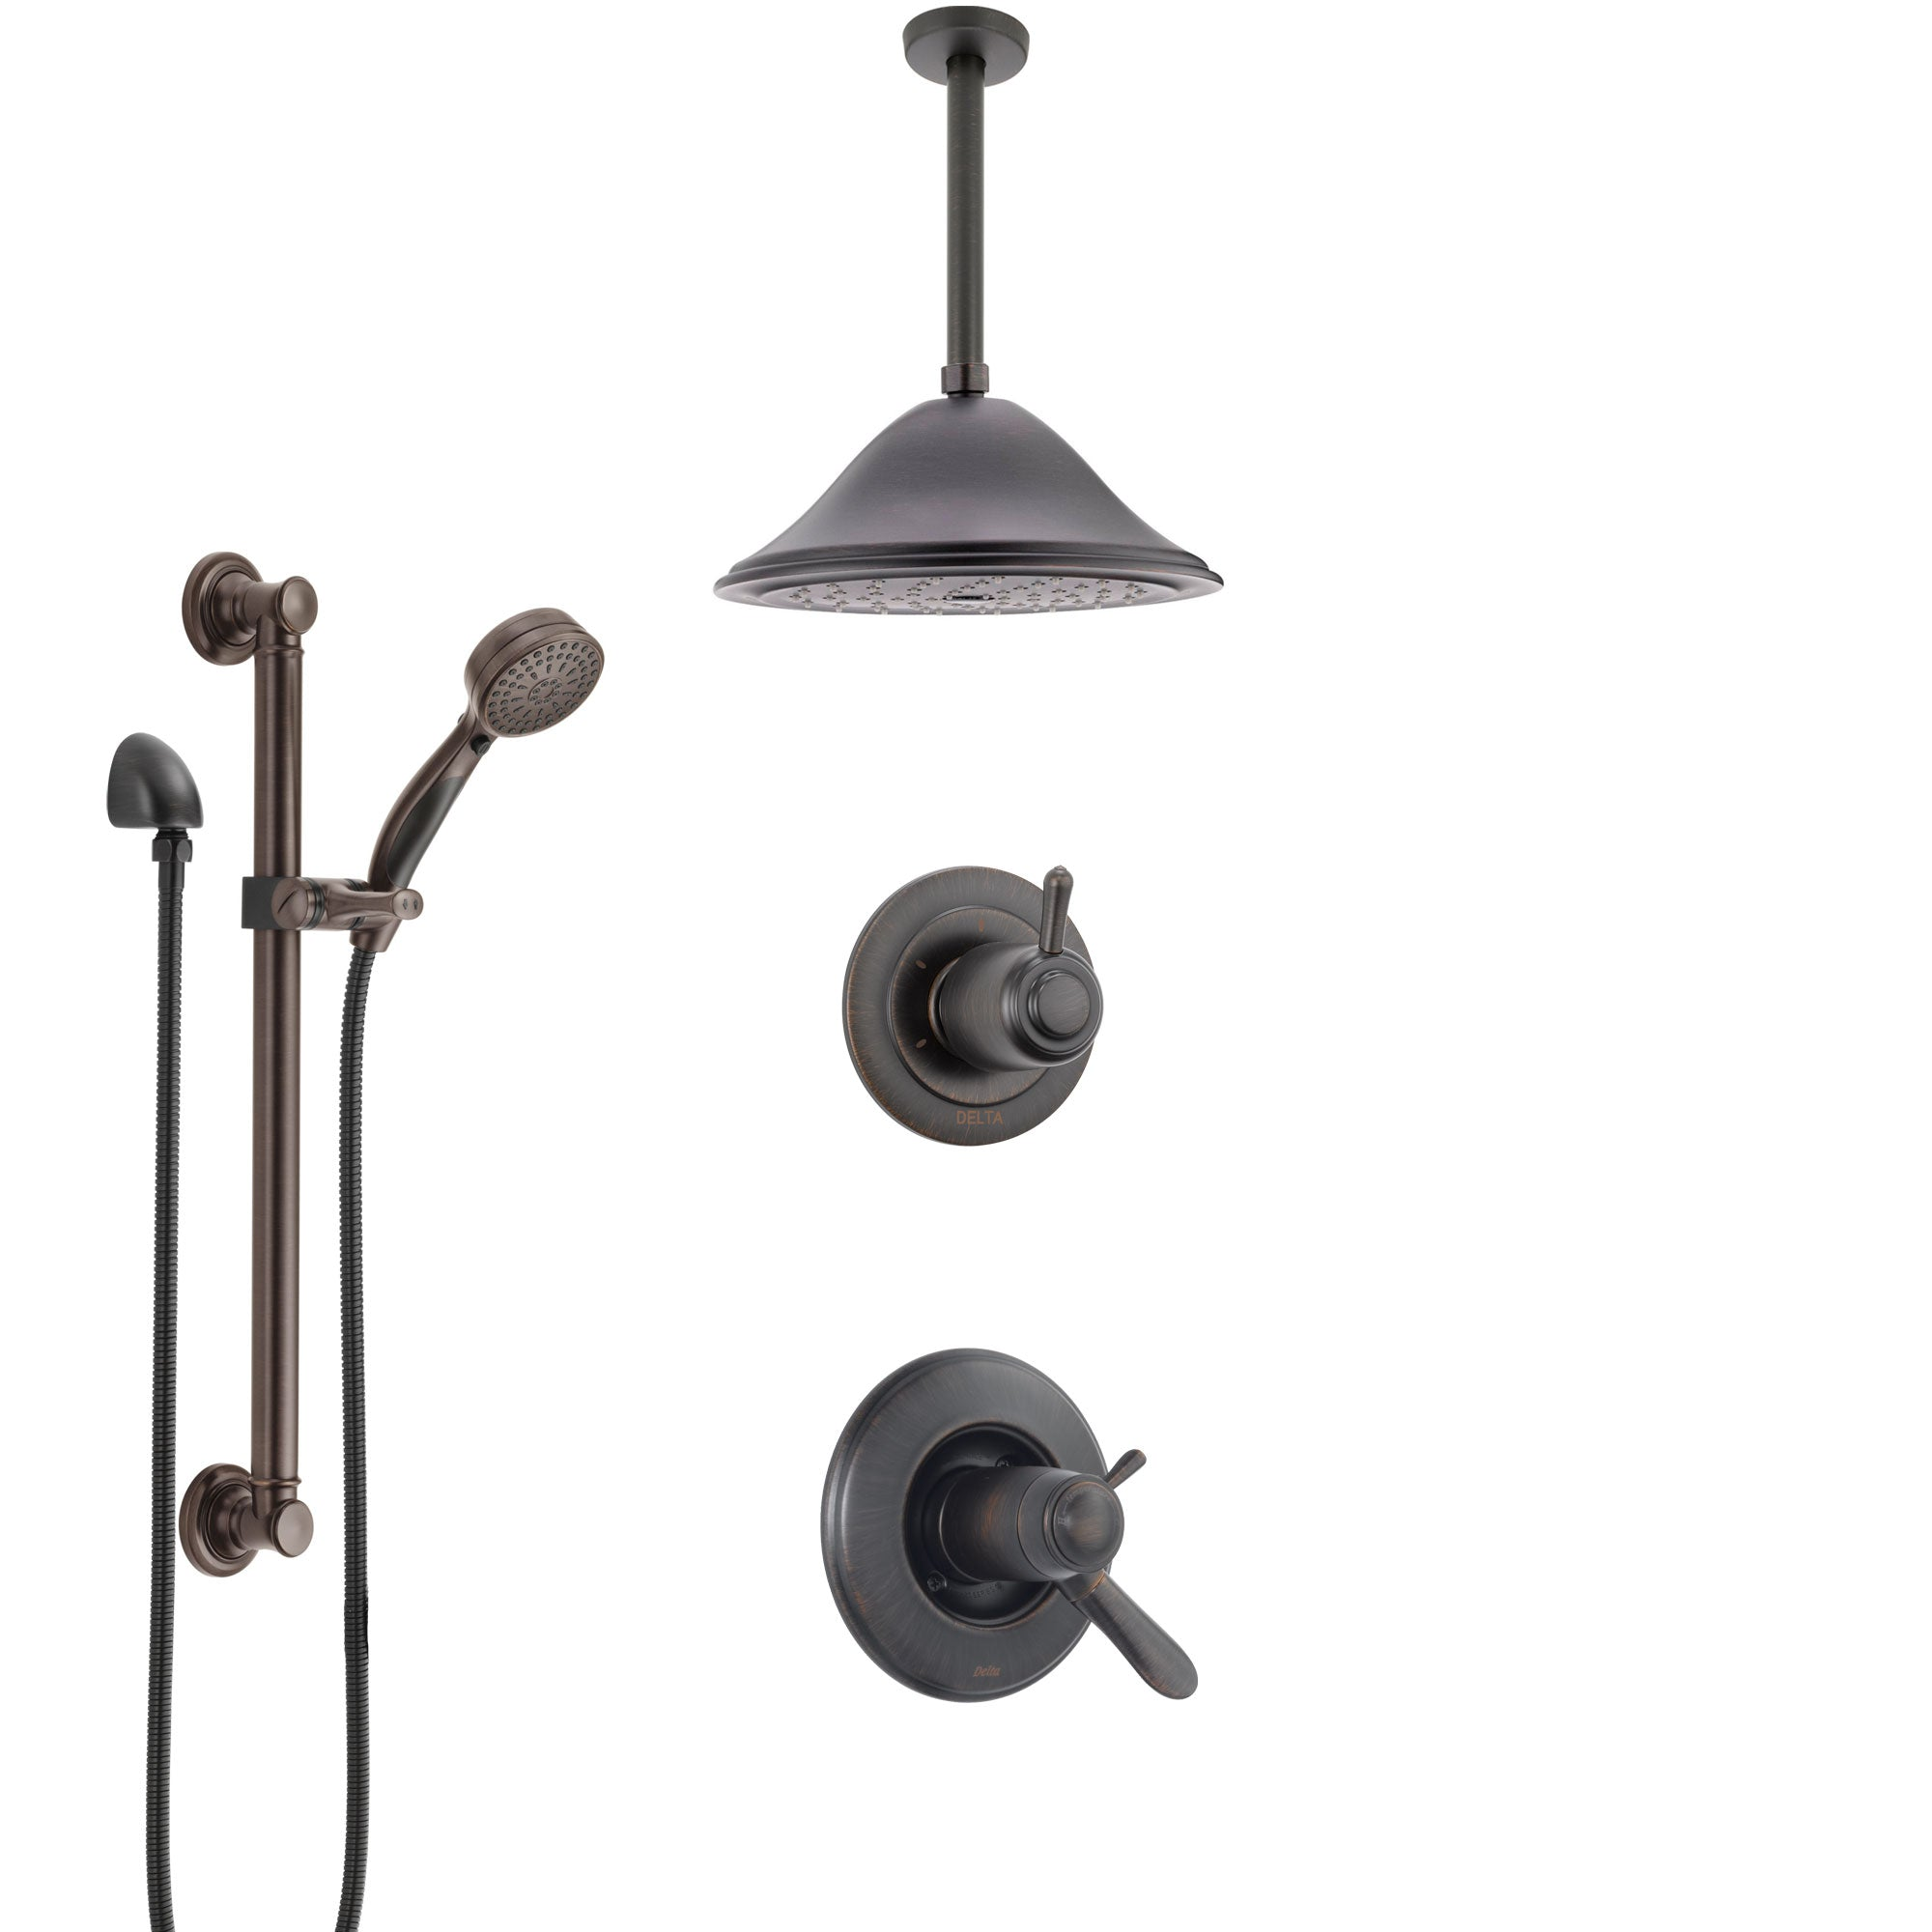 Delta Lahara Venetian Bronze Shower System with Dual Thermostatic Control, Diverter, Ceiling Mount Showerhead, and Grab Bar Hand Shower SS17T381RB2